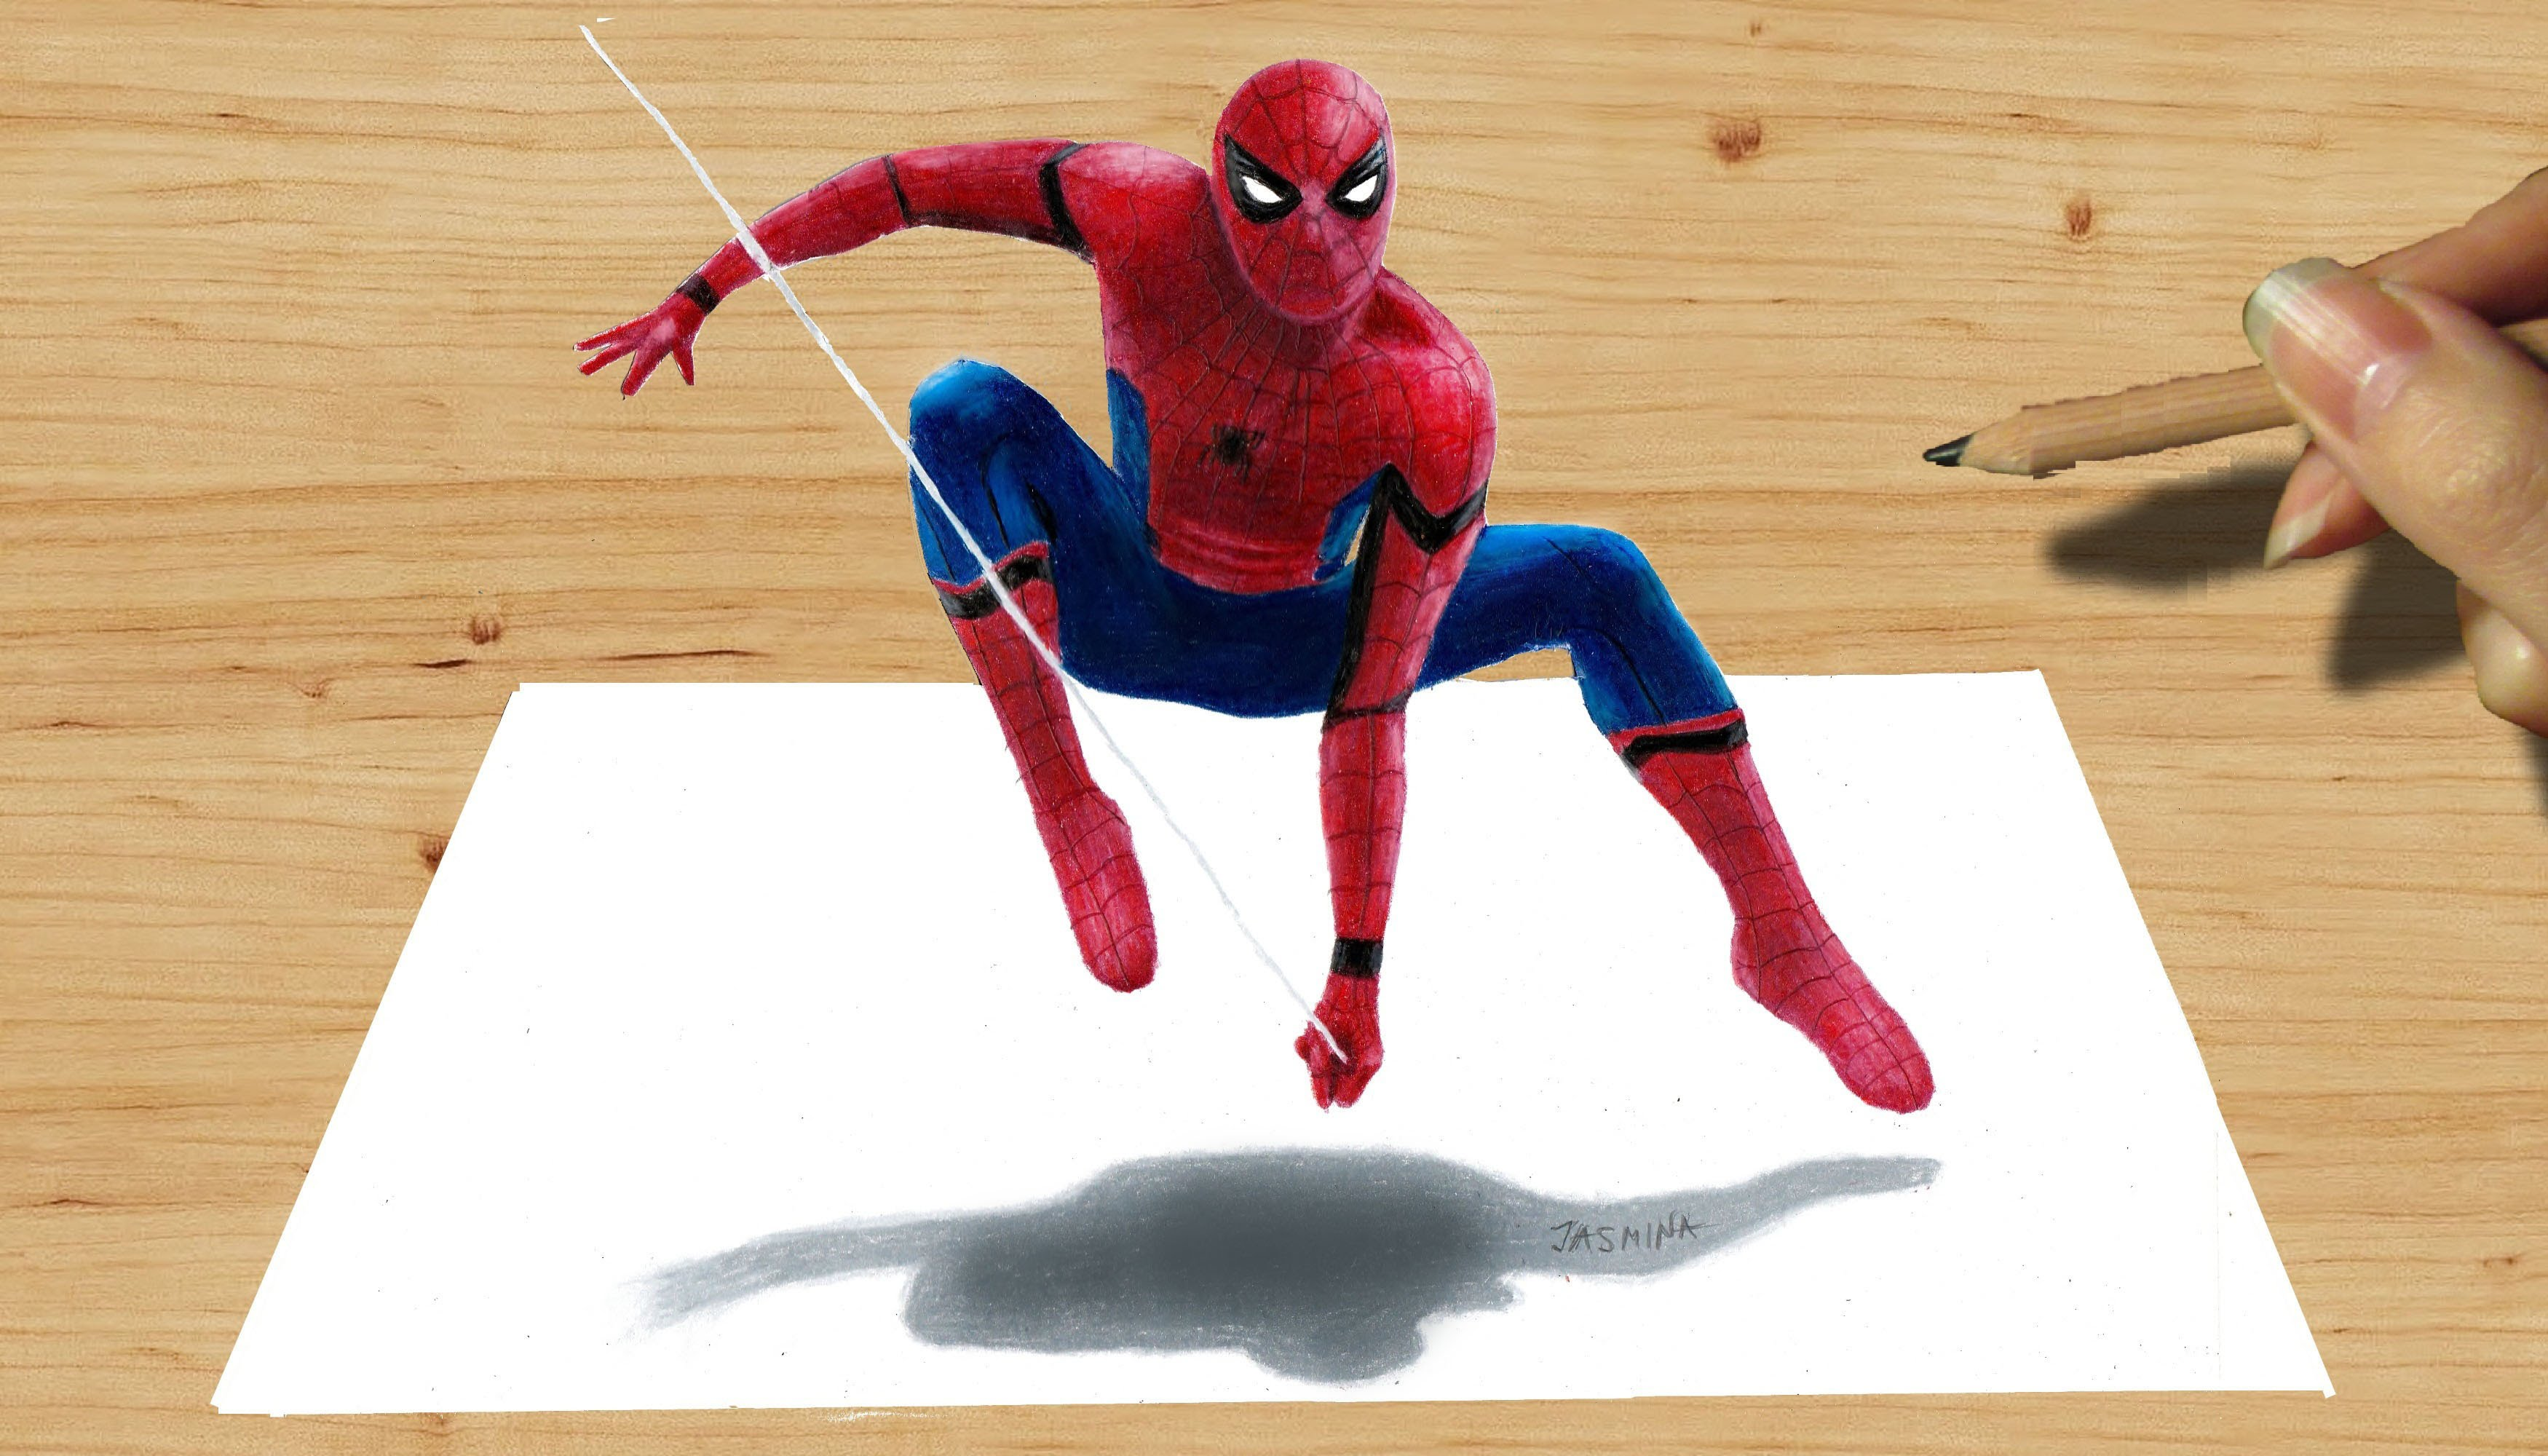 Drawn spider-man pencil drawing  America Unsubscribe Pencil NEW